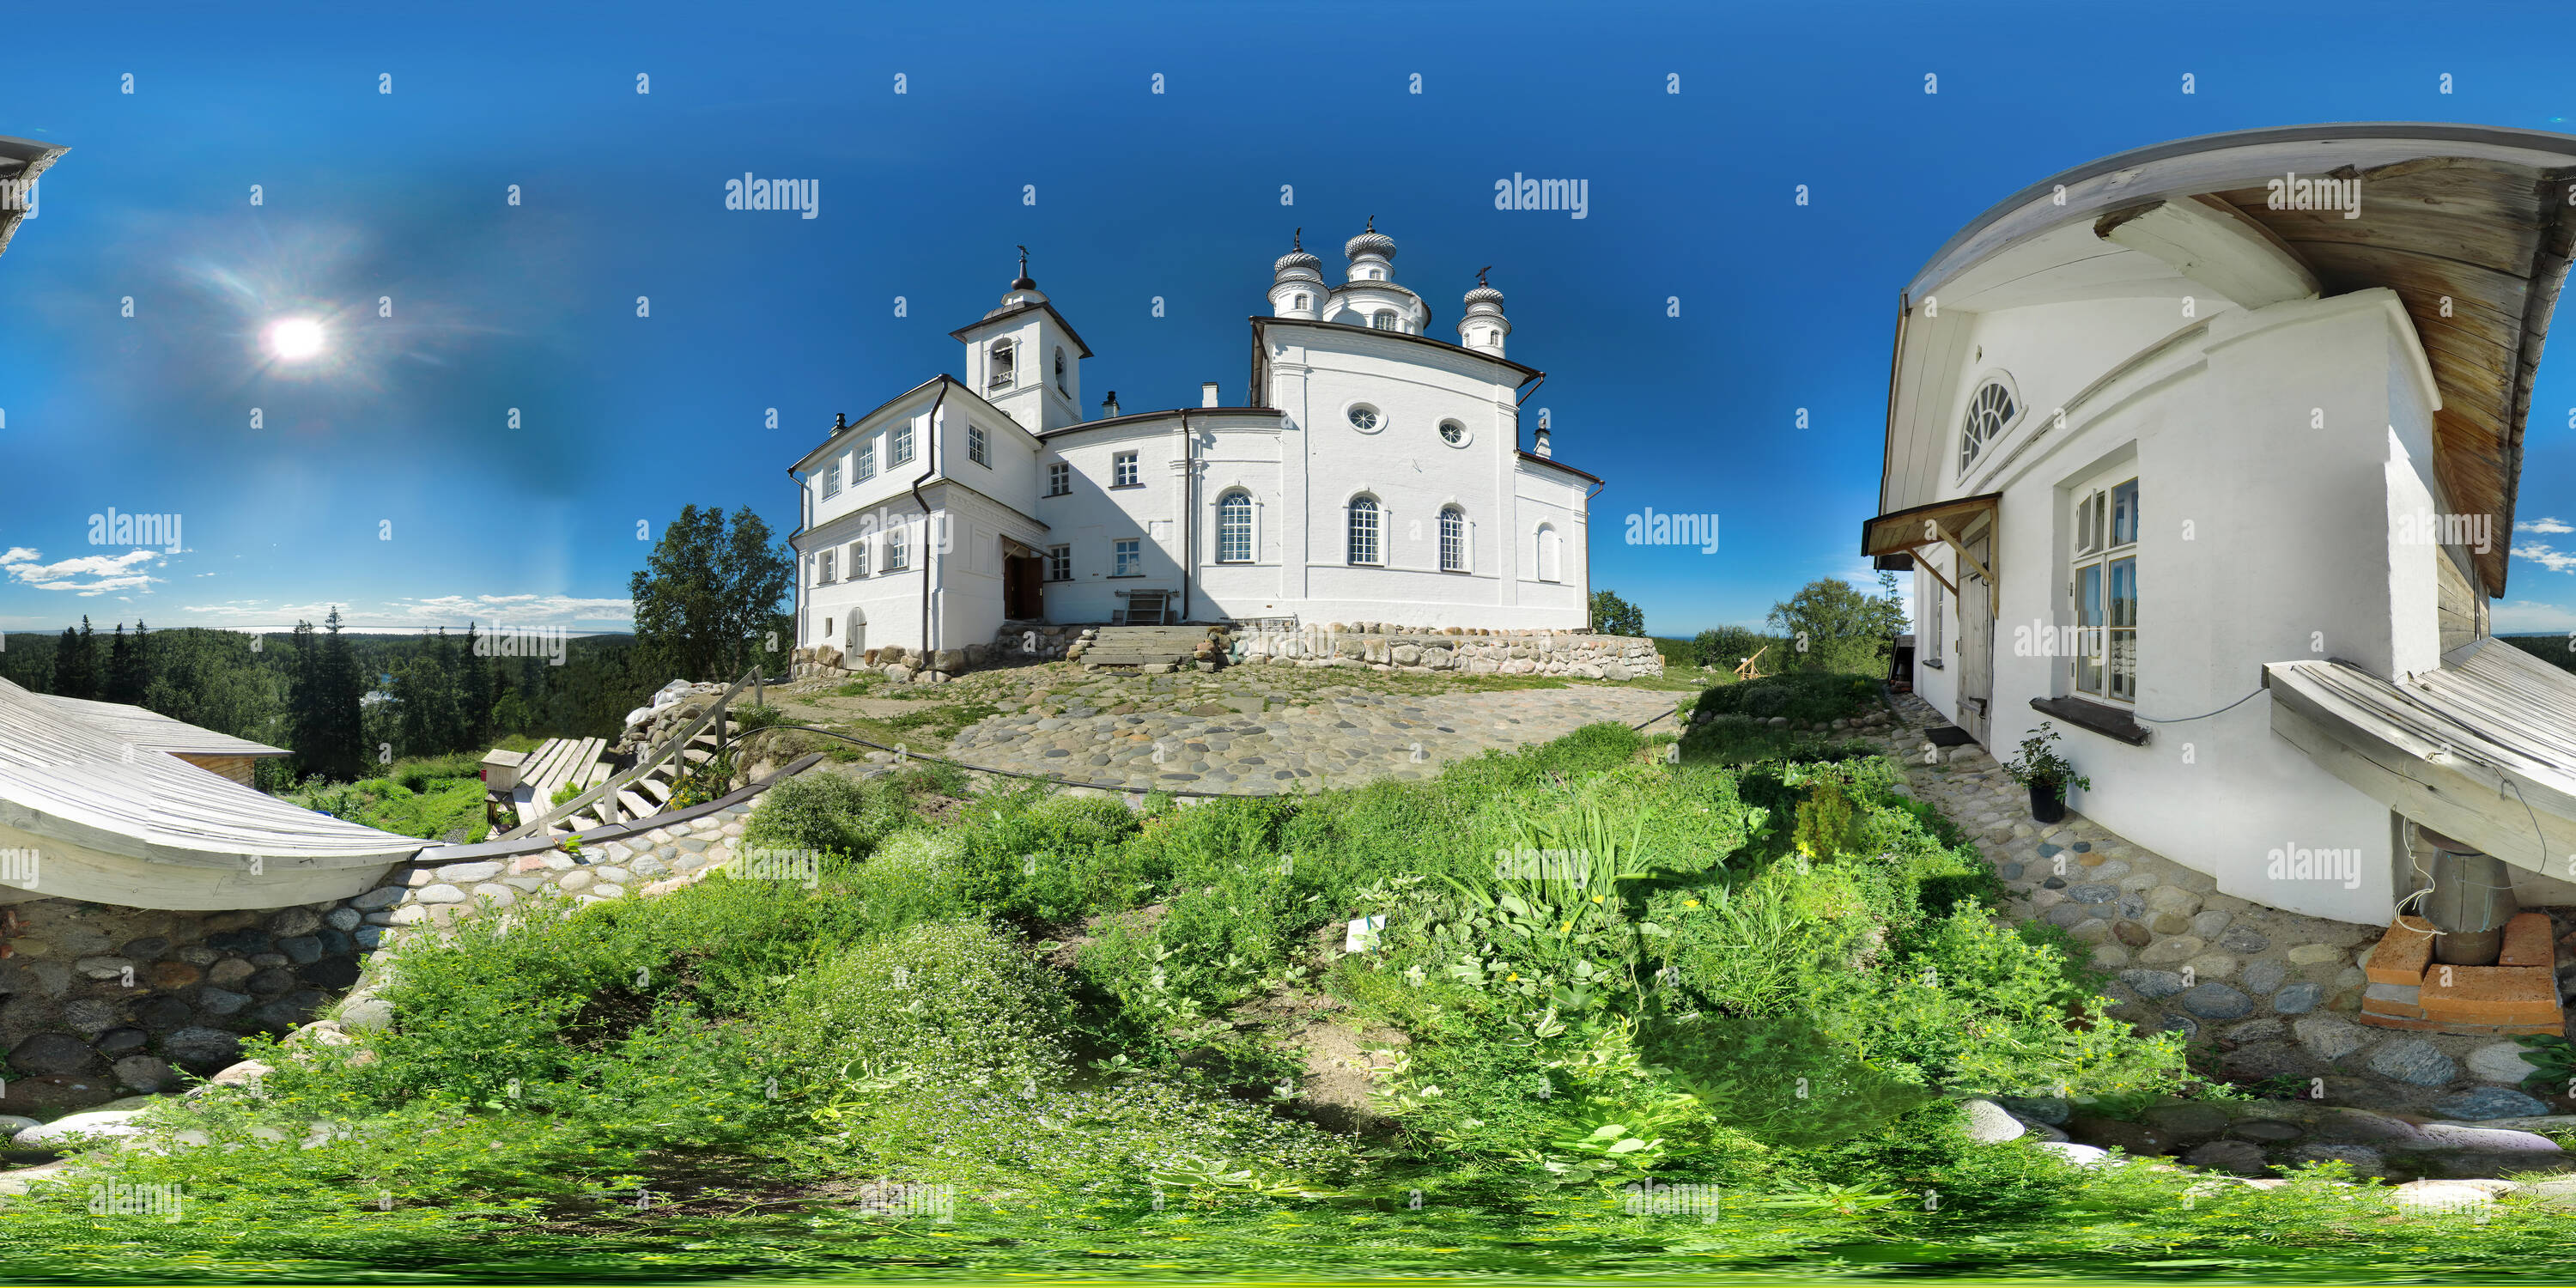 360 degree panoramic view of Solovetsky monastery ,Anzer ,Skete of the Golgotha Crucifixion ,Solovetsky Archipelago (Solovki) in the White Sea